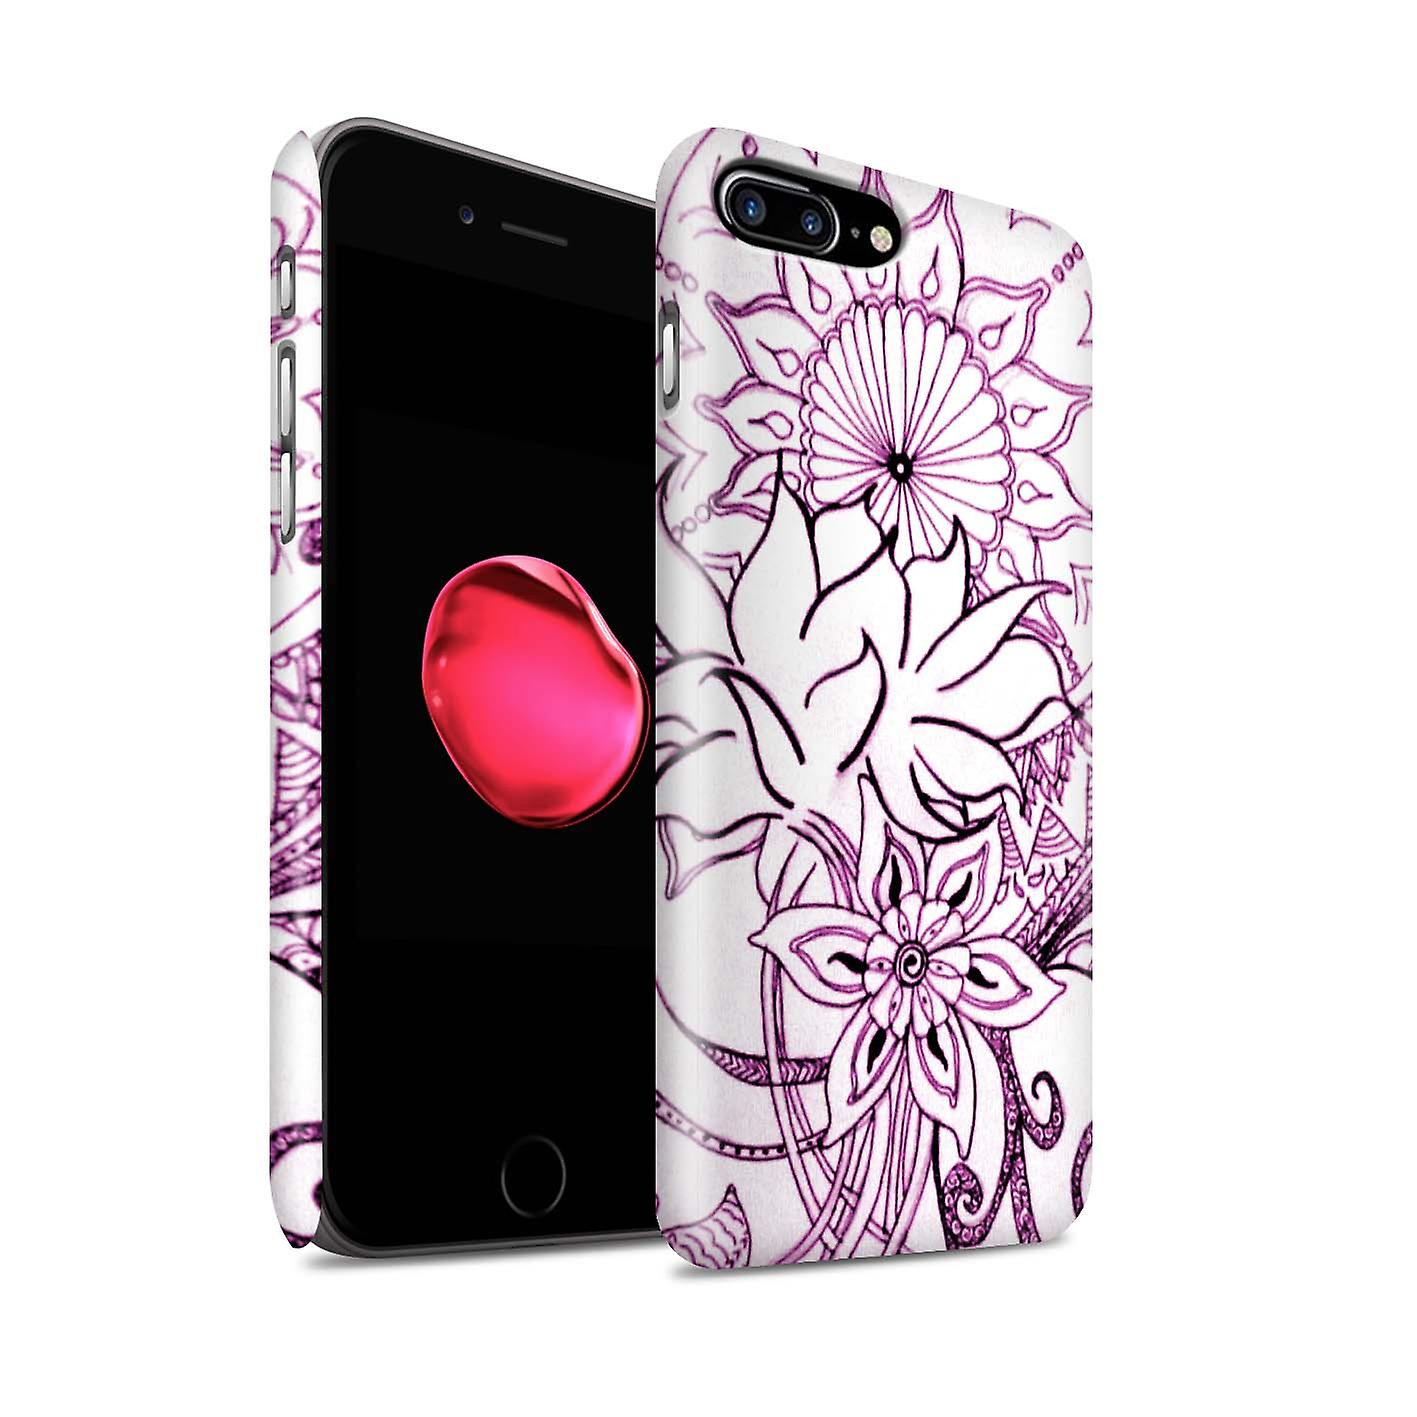 STUFF4 Matte Hard Back Snap-On Phone Case for Apple iPhone 7 Plus /  White/Purple Design / Henna Paisley Flower Collection